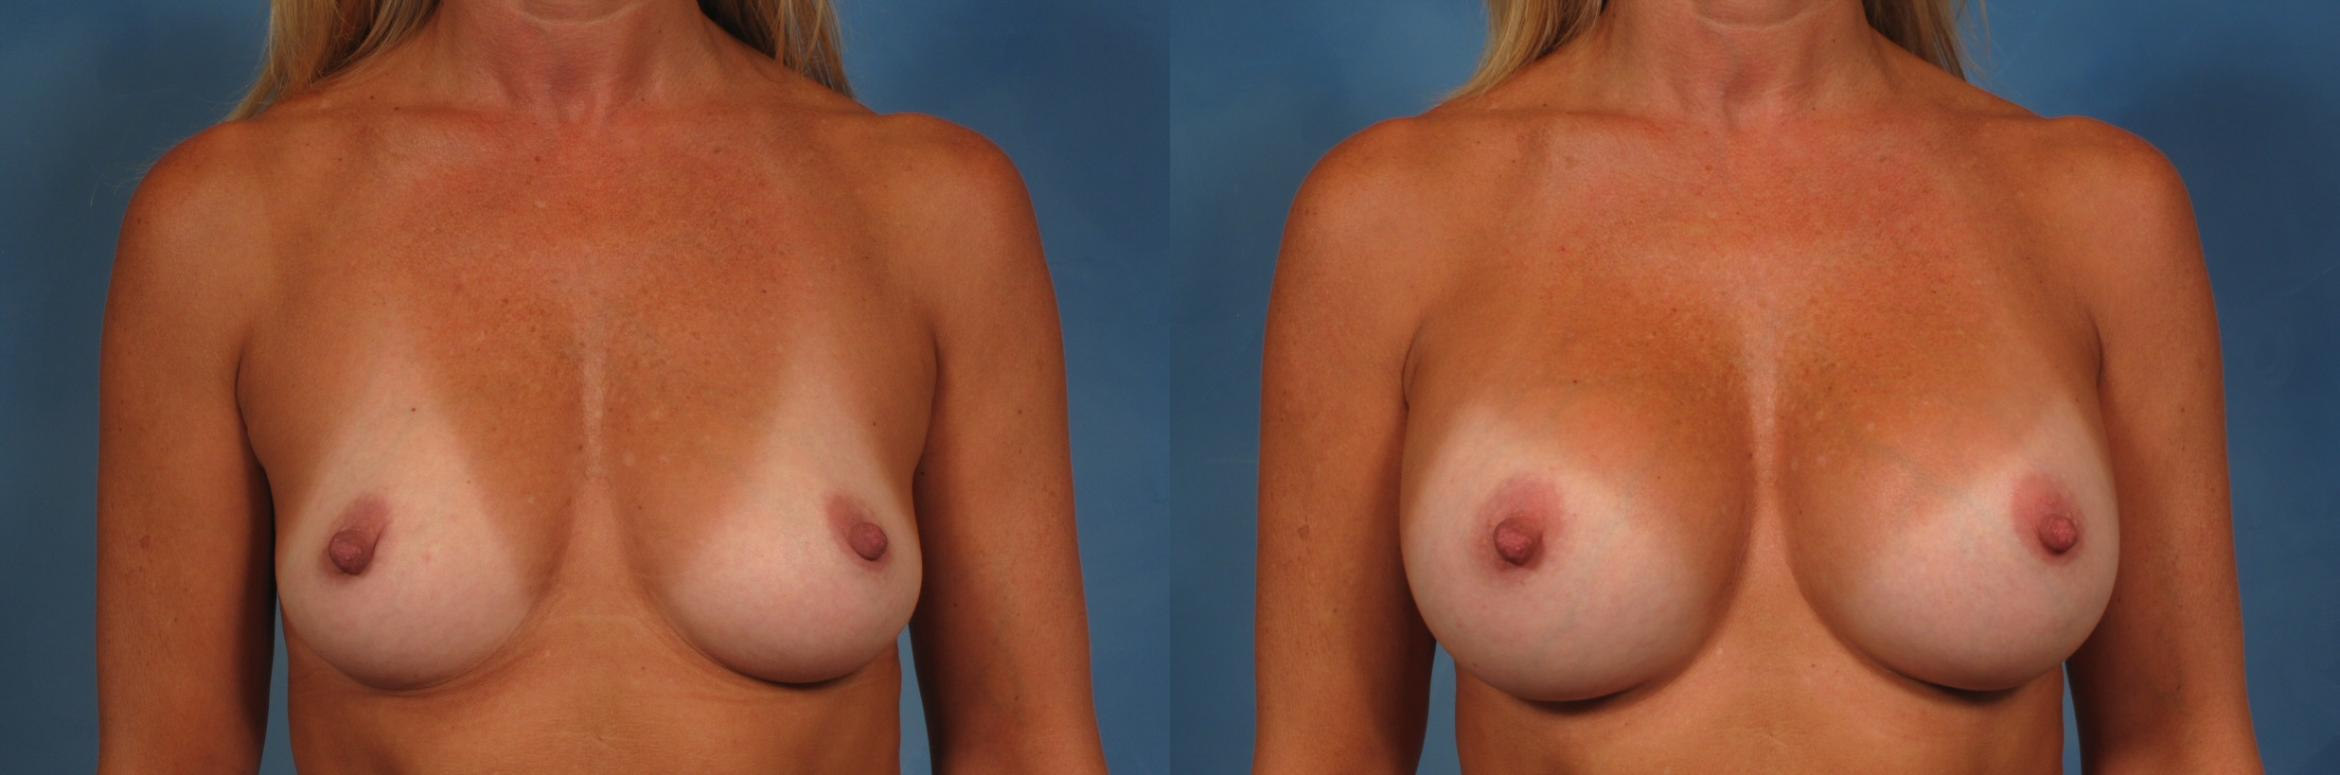 Breast Augmentation Case 206 Before & After View #1 | Naples, FL | Kent V. Hasen, M.D.